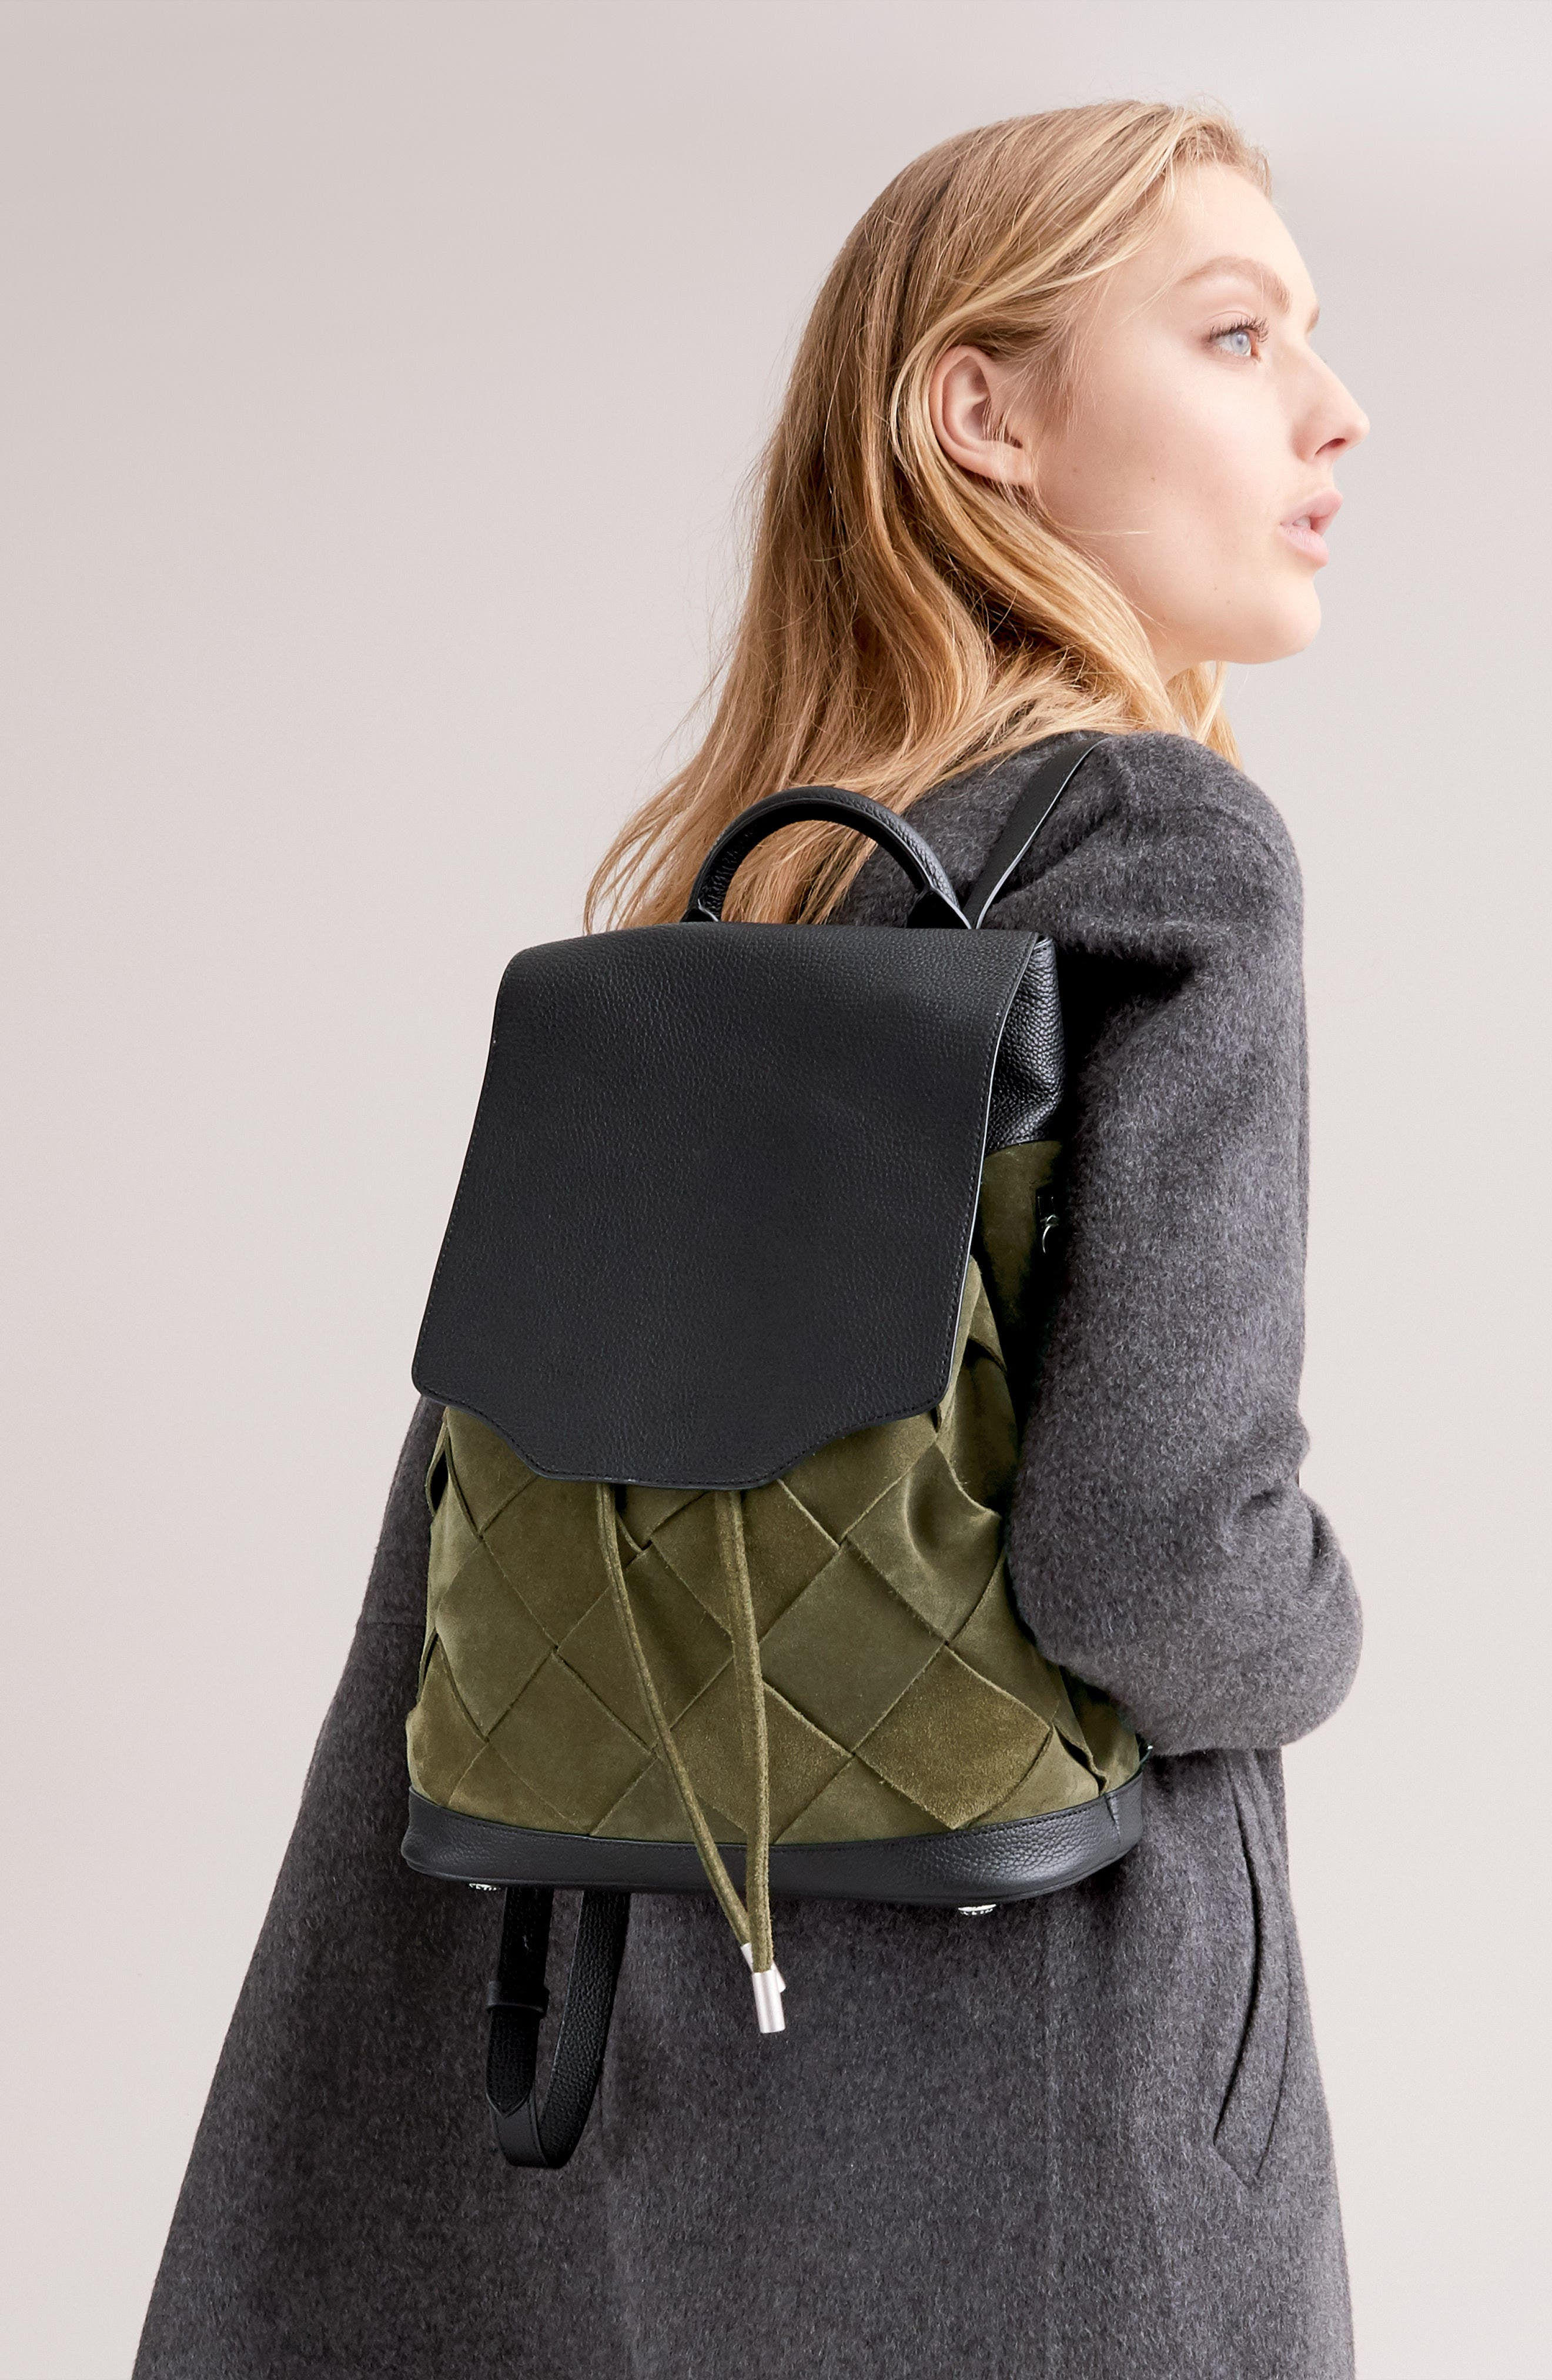 Pilot Suede & Leather Backpack,                             Alternate thumbnail 7, color,                             300